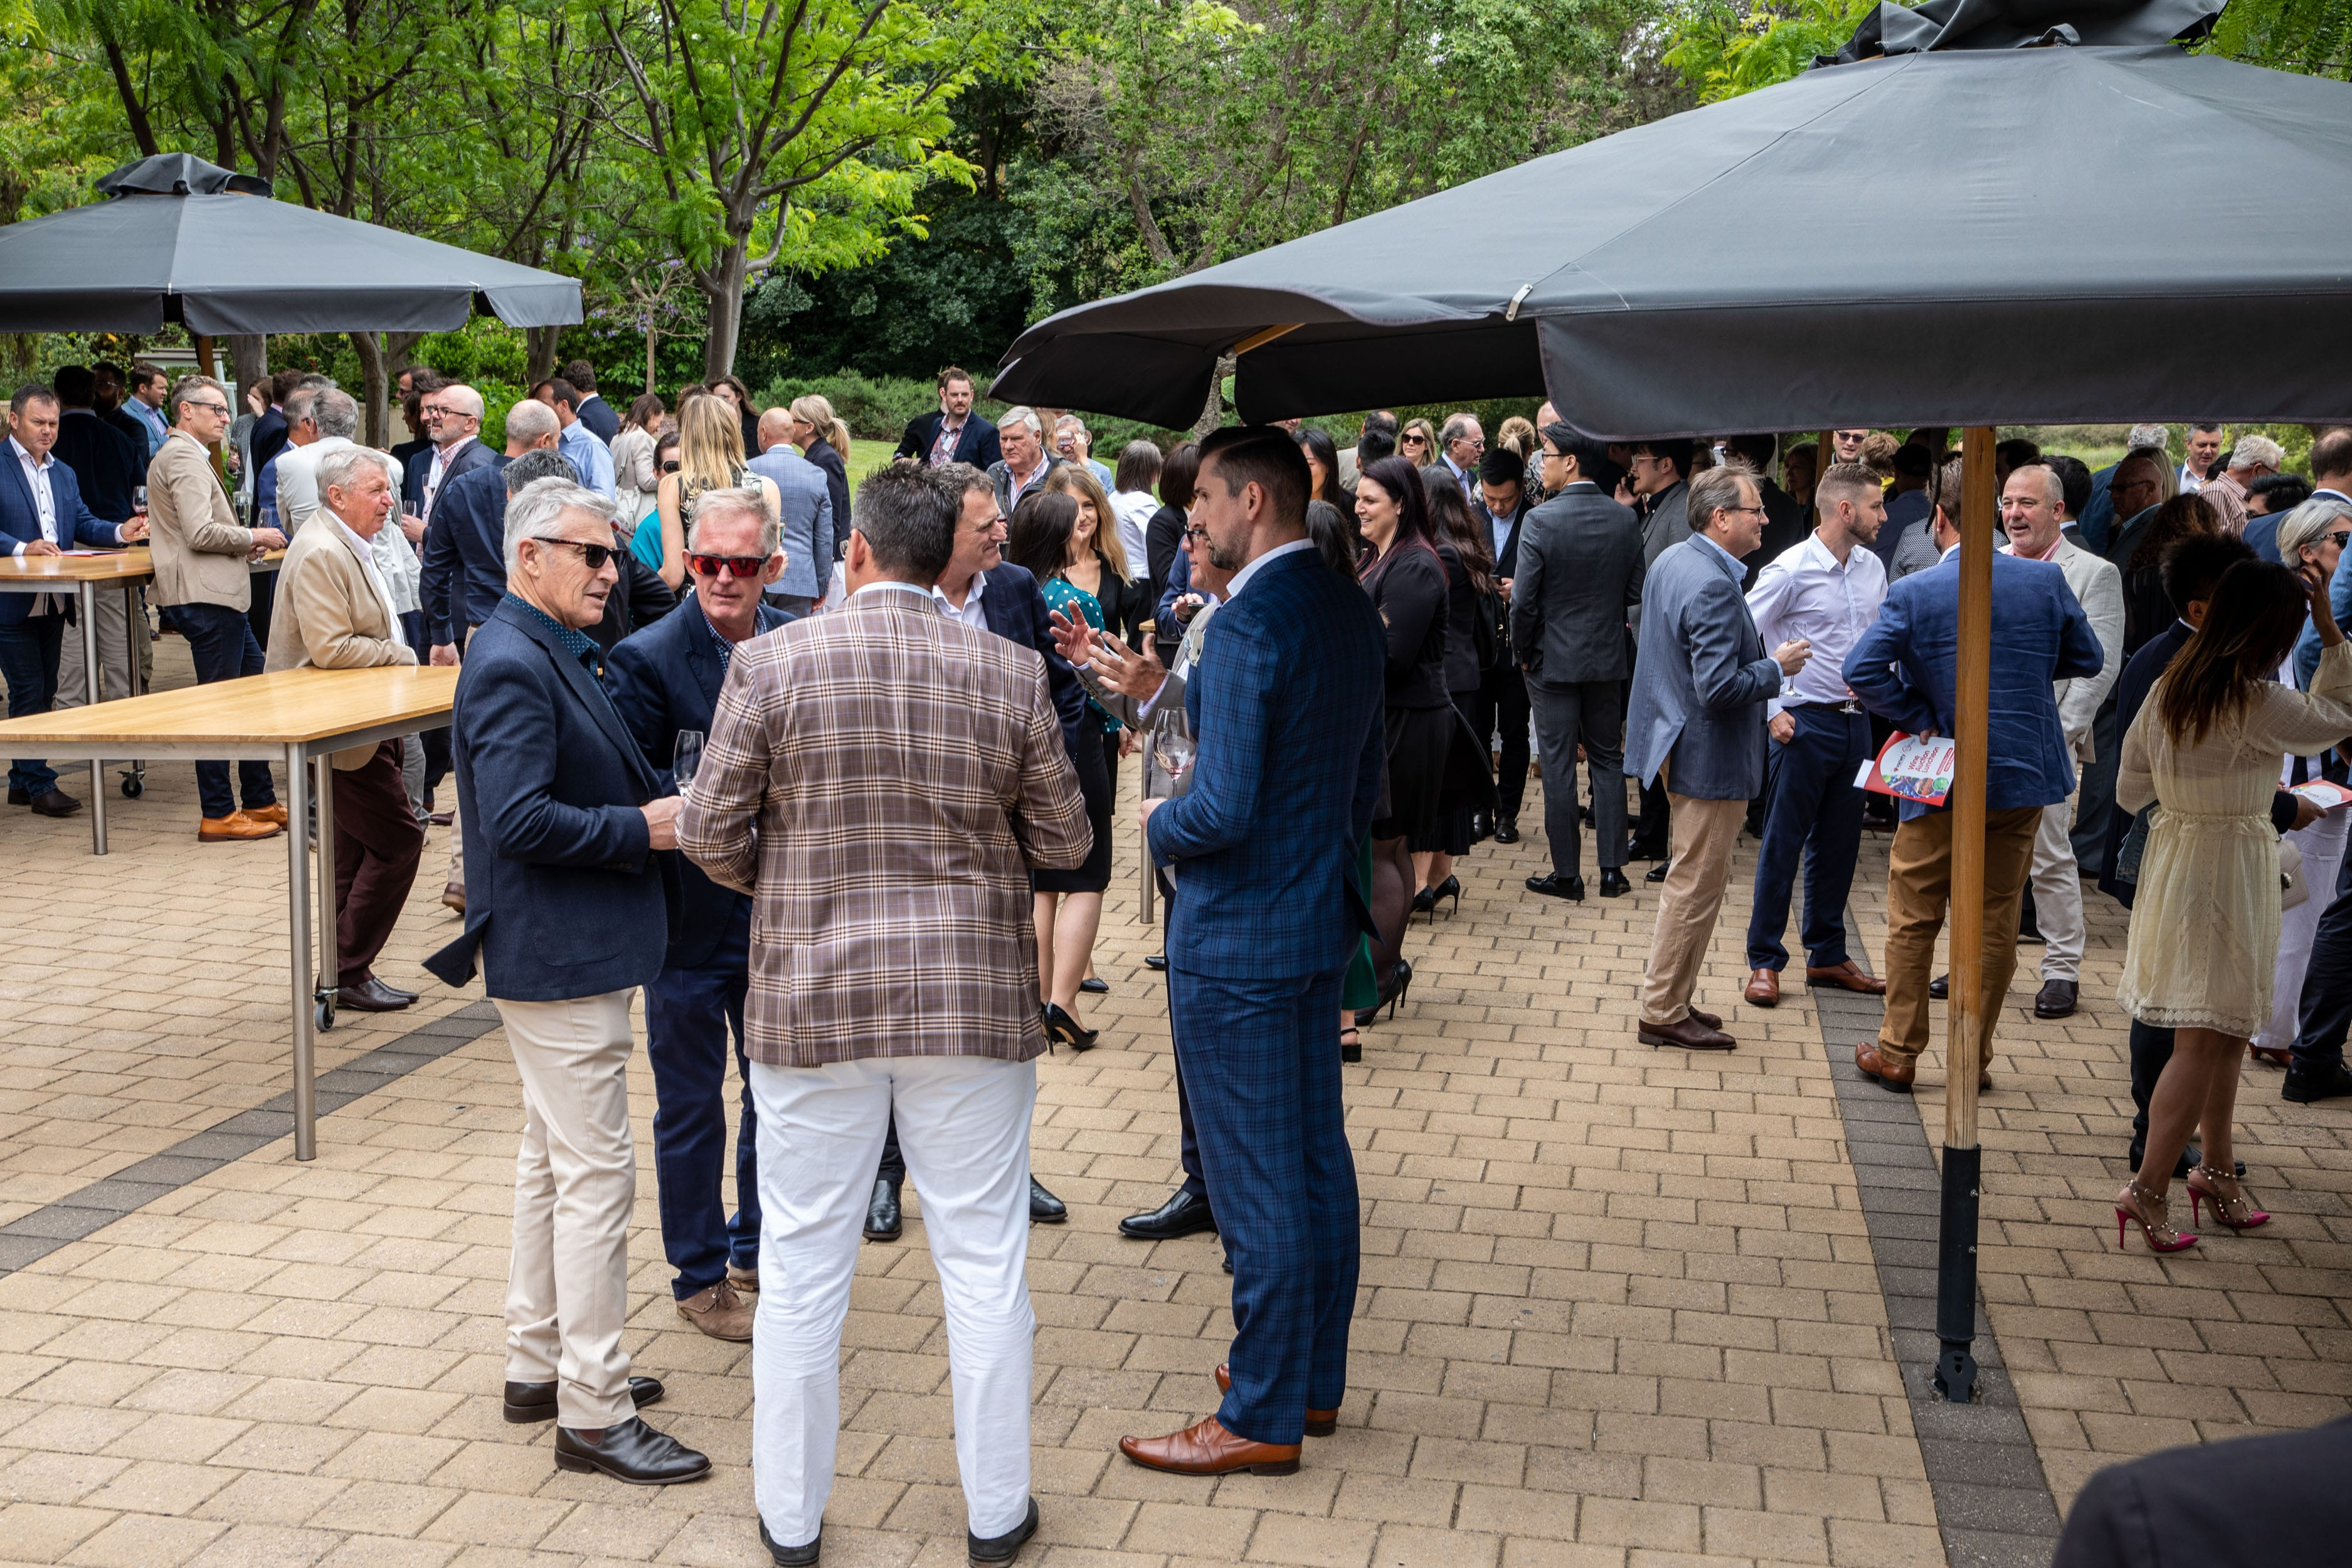 Variety Vintage Wine Auction Luncheon 2019 raised $198,000 net for SA kids in need